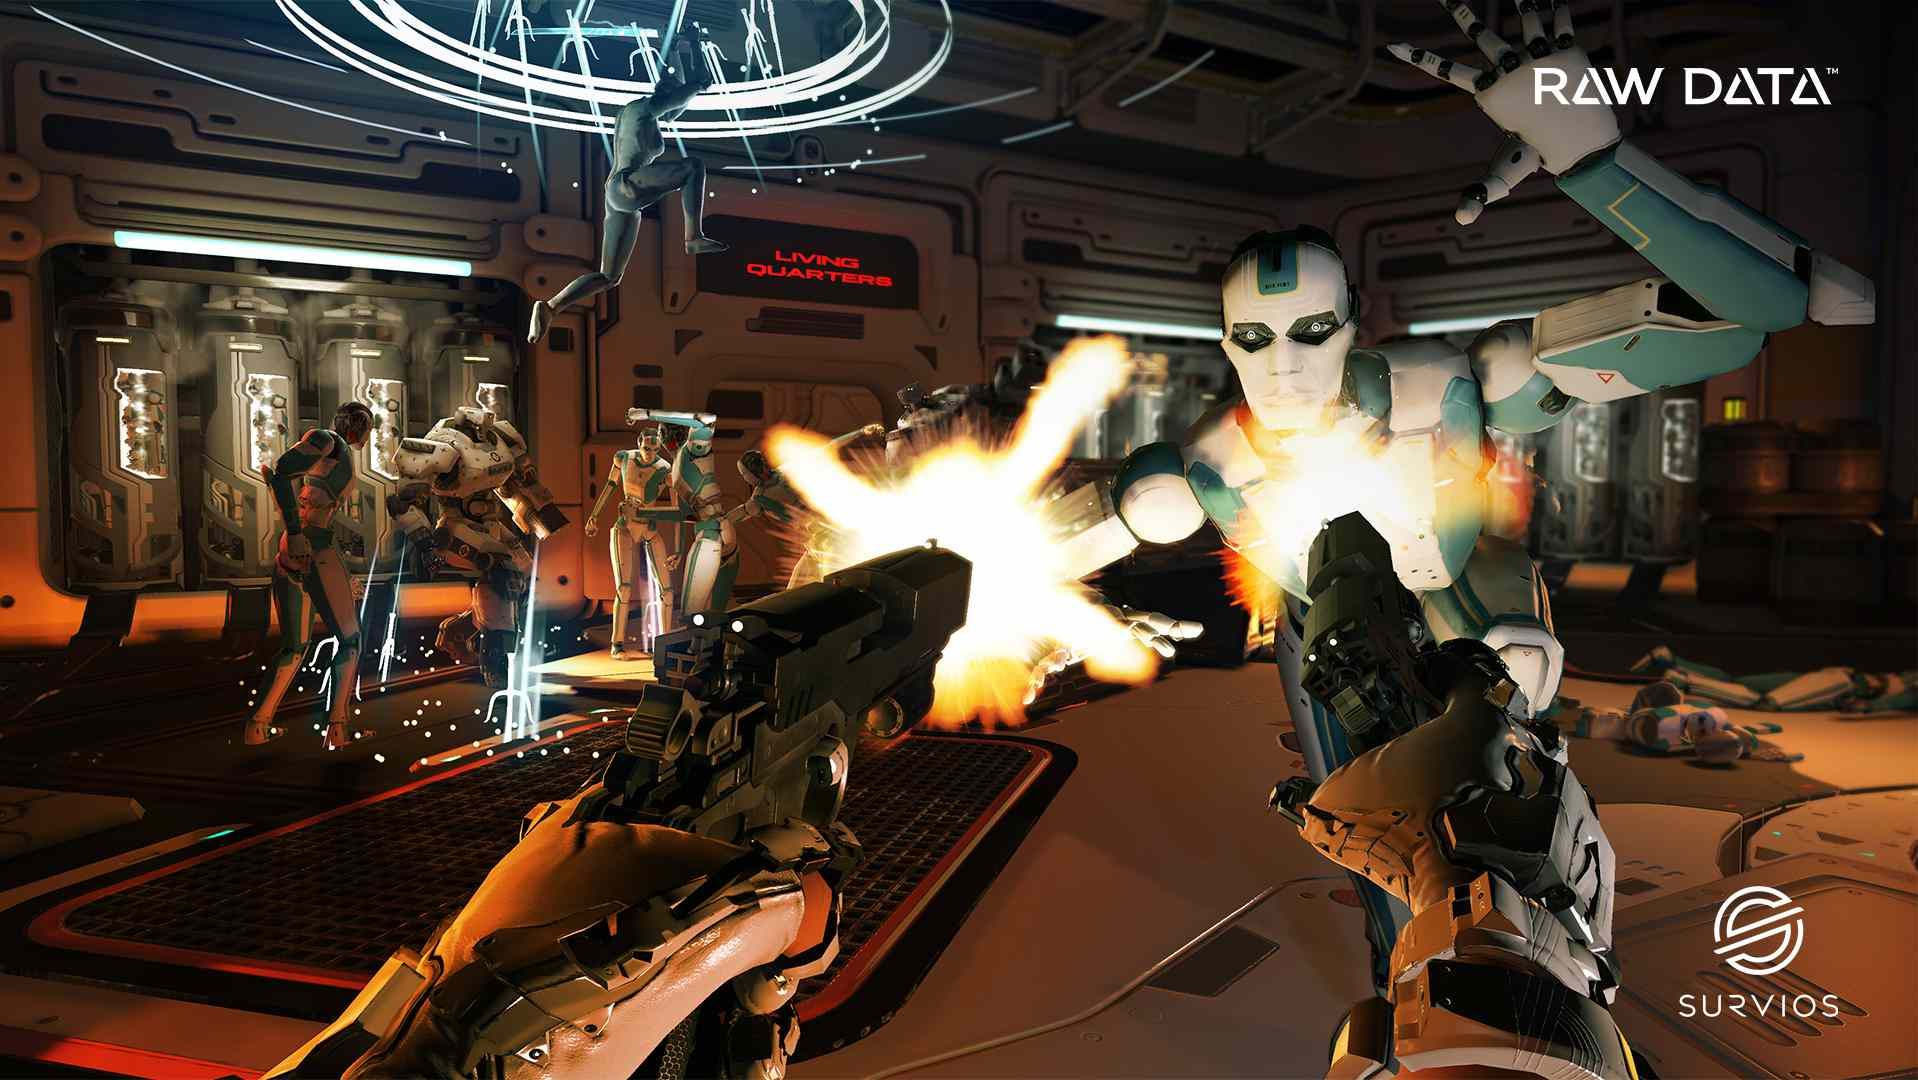 A blue and white robot attacks, while two pistols fire at it.